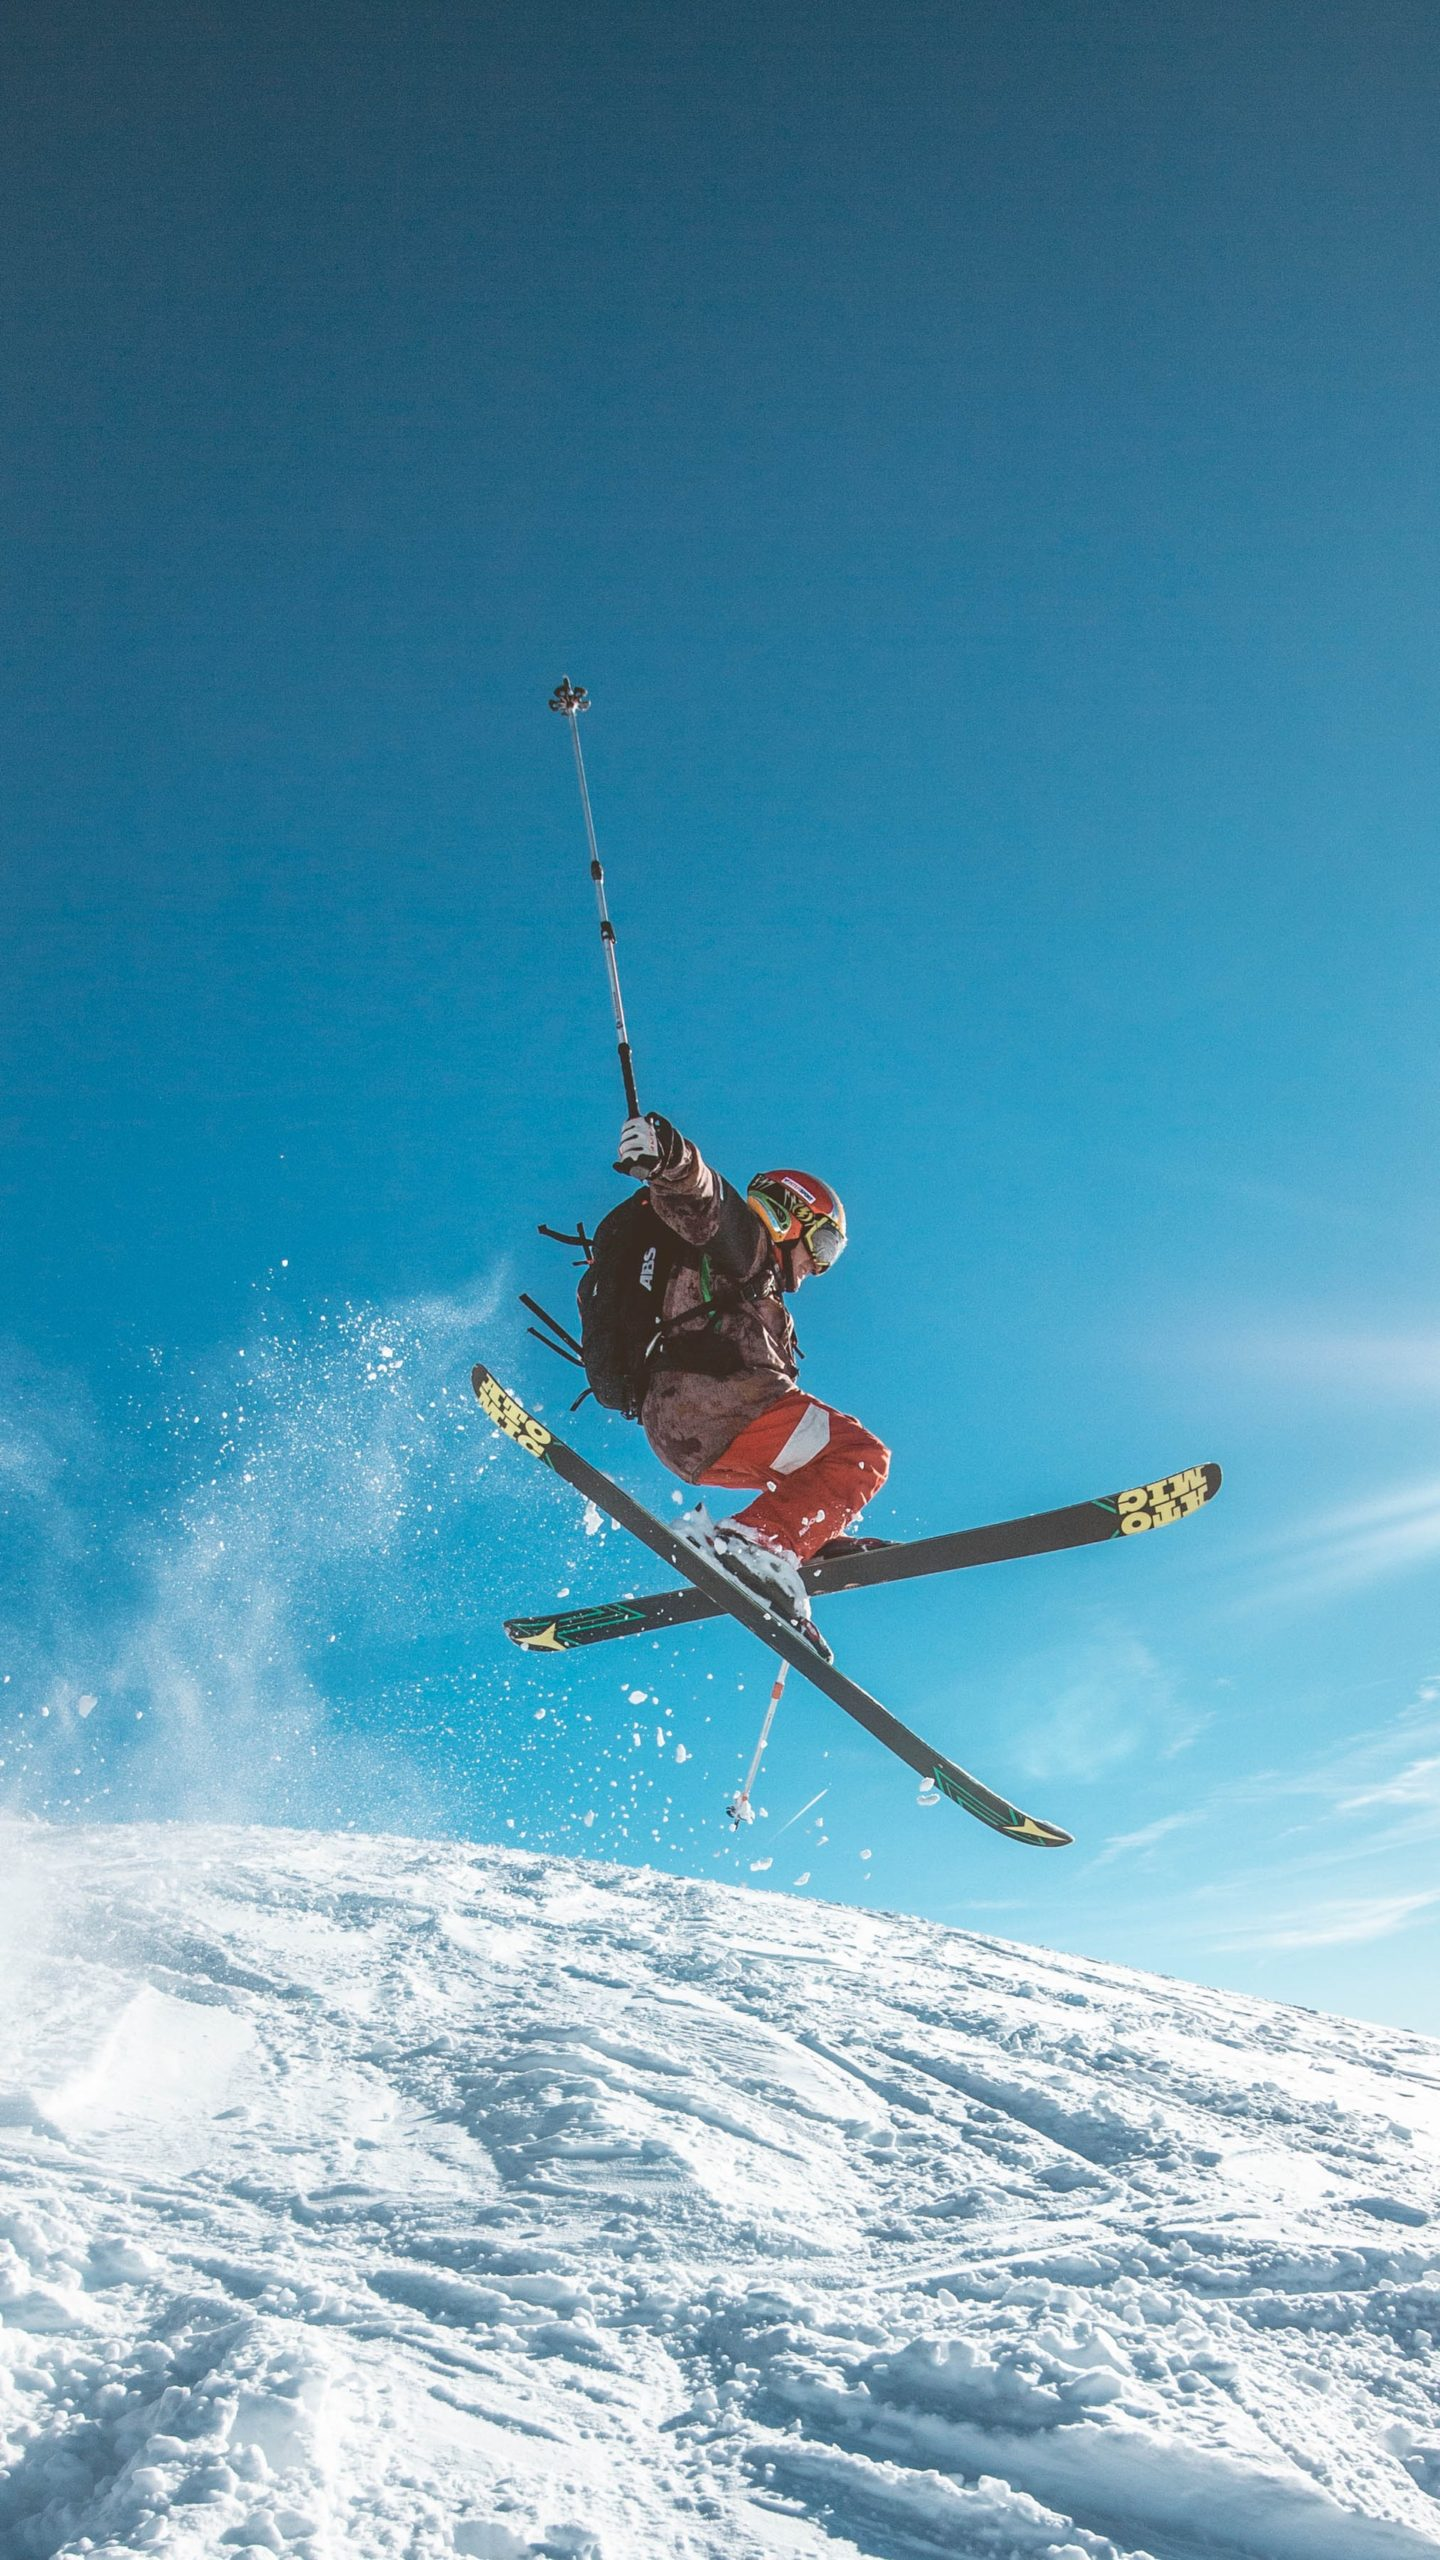 Gear Need Skiing Article Image